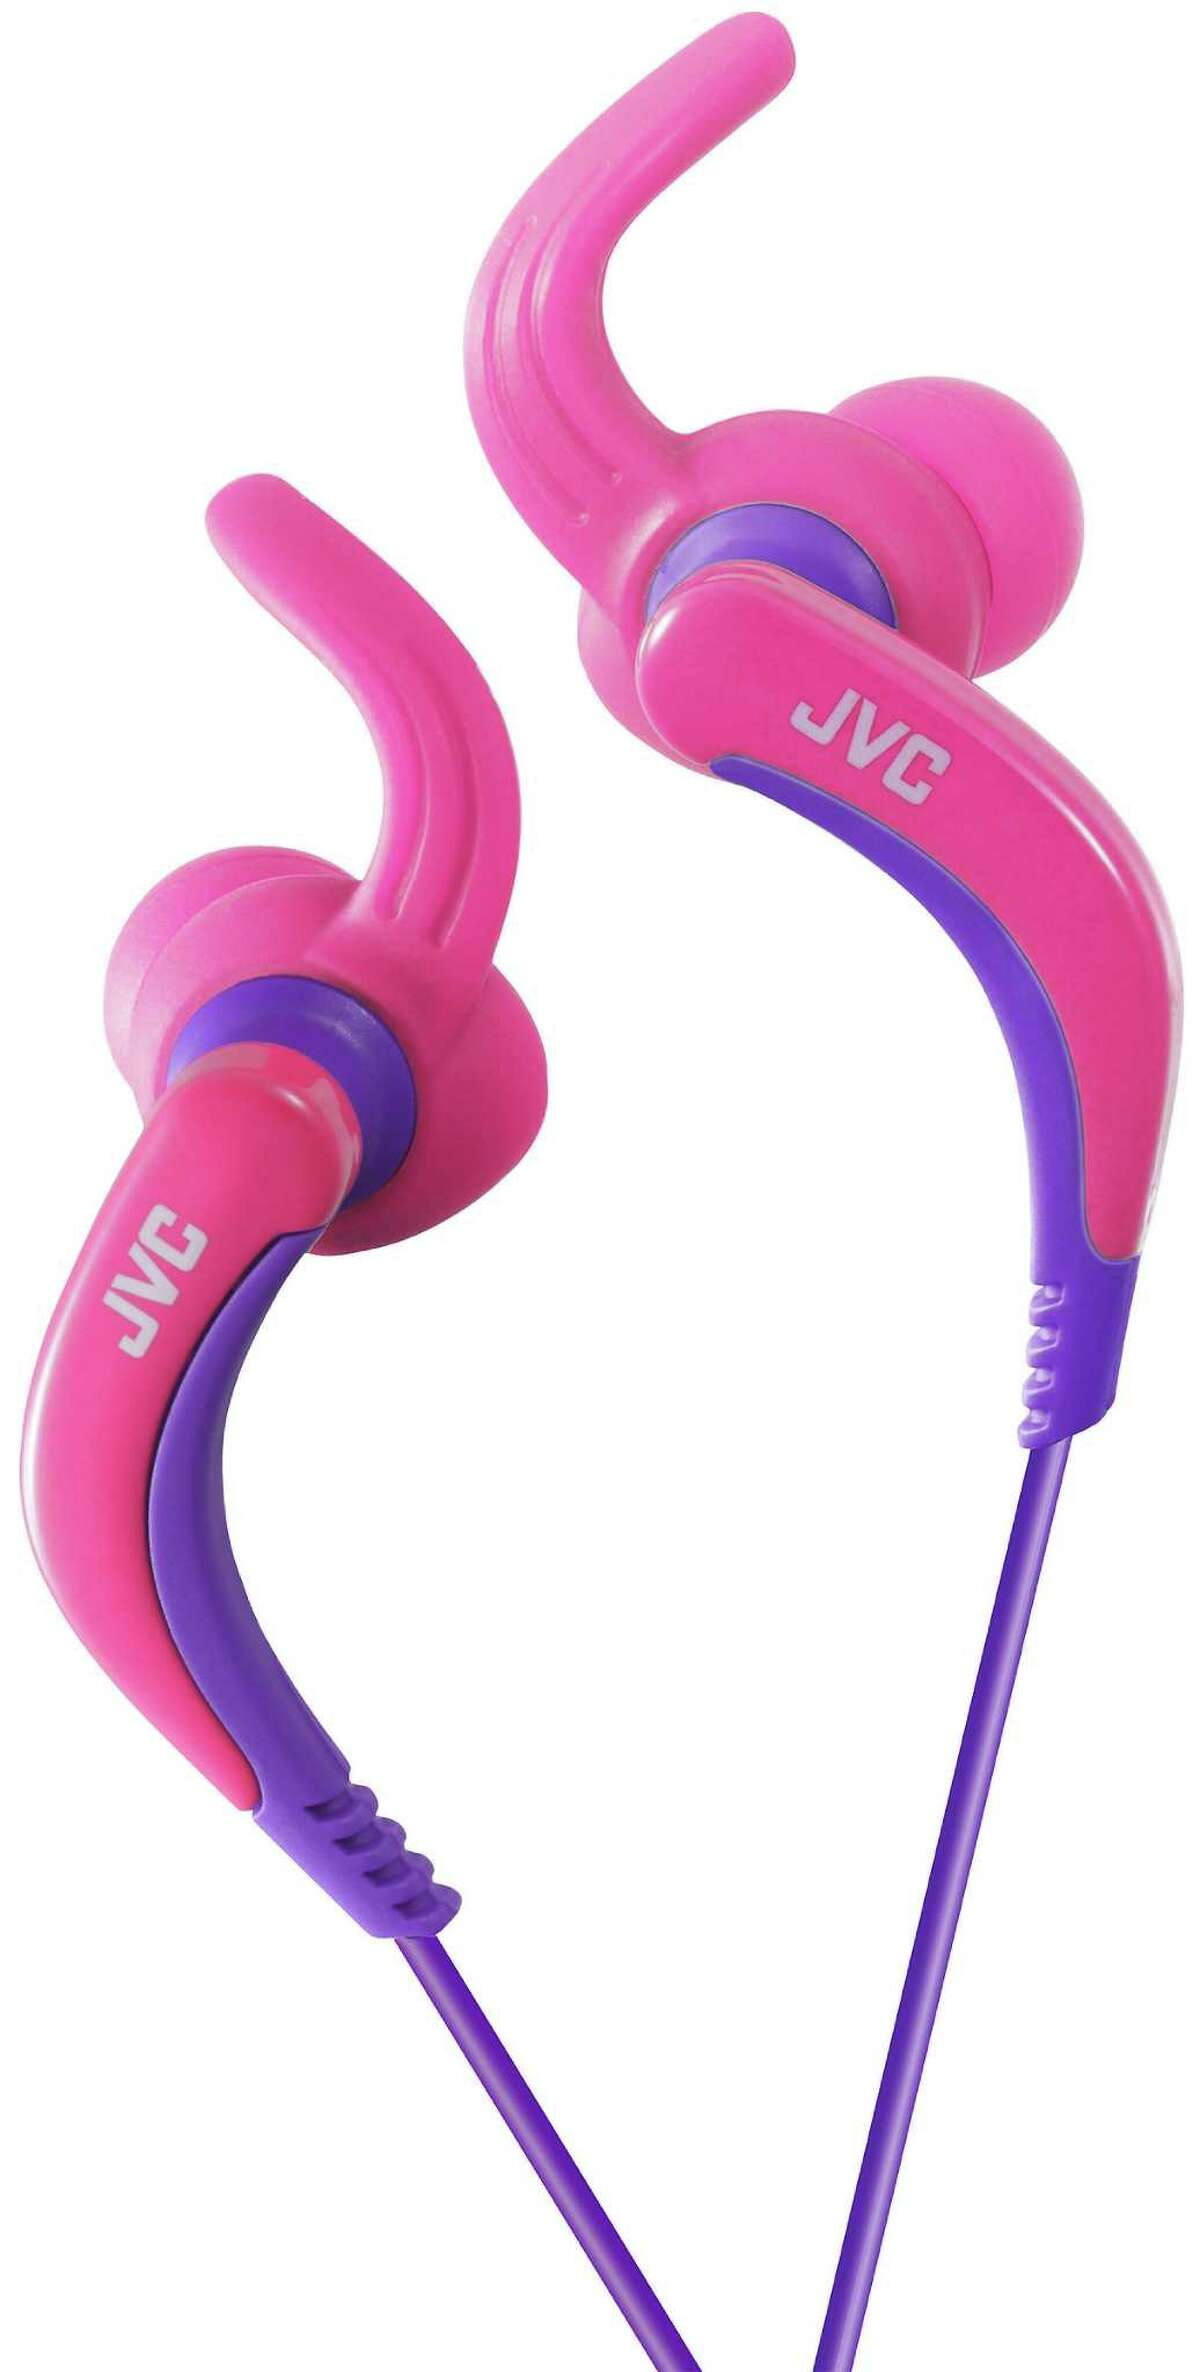 JVC Extreme Fitness HA-ETX30 headphones: These feature a soft rubber rotating hook to keep the earpiece in place during vigorous workouts. The waterproof earbuds also include a 3.94-foot cord with an iPhone compatible plug and a cable clip. $29.95; jvc.com